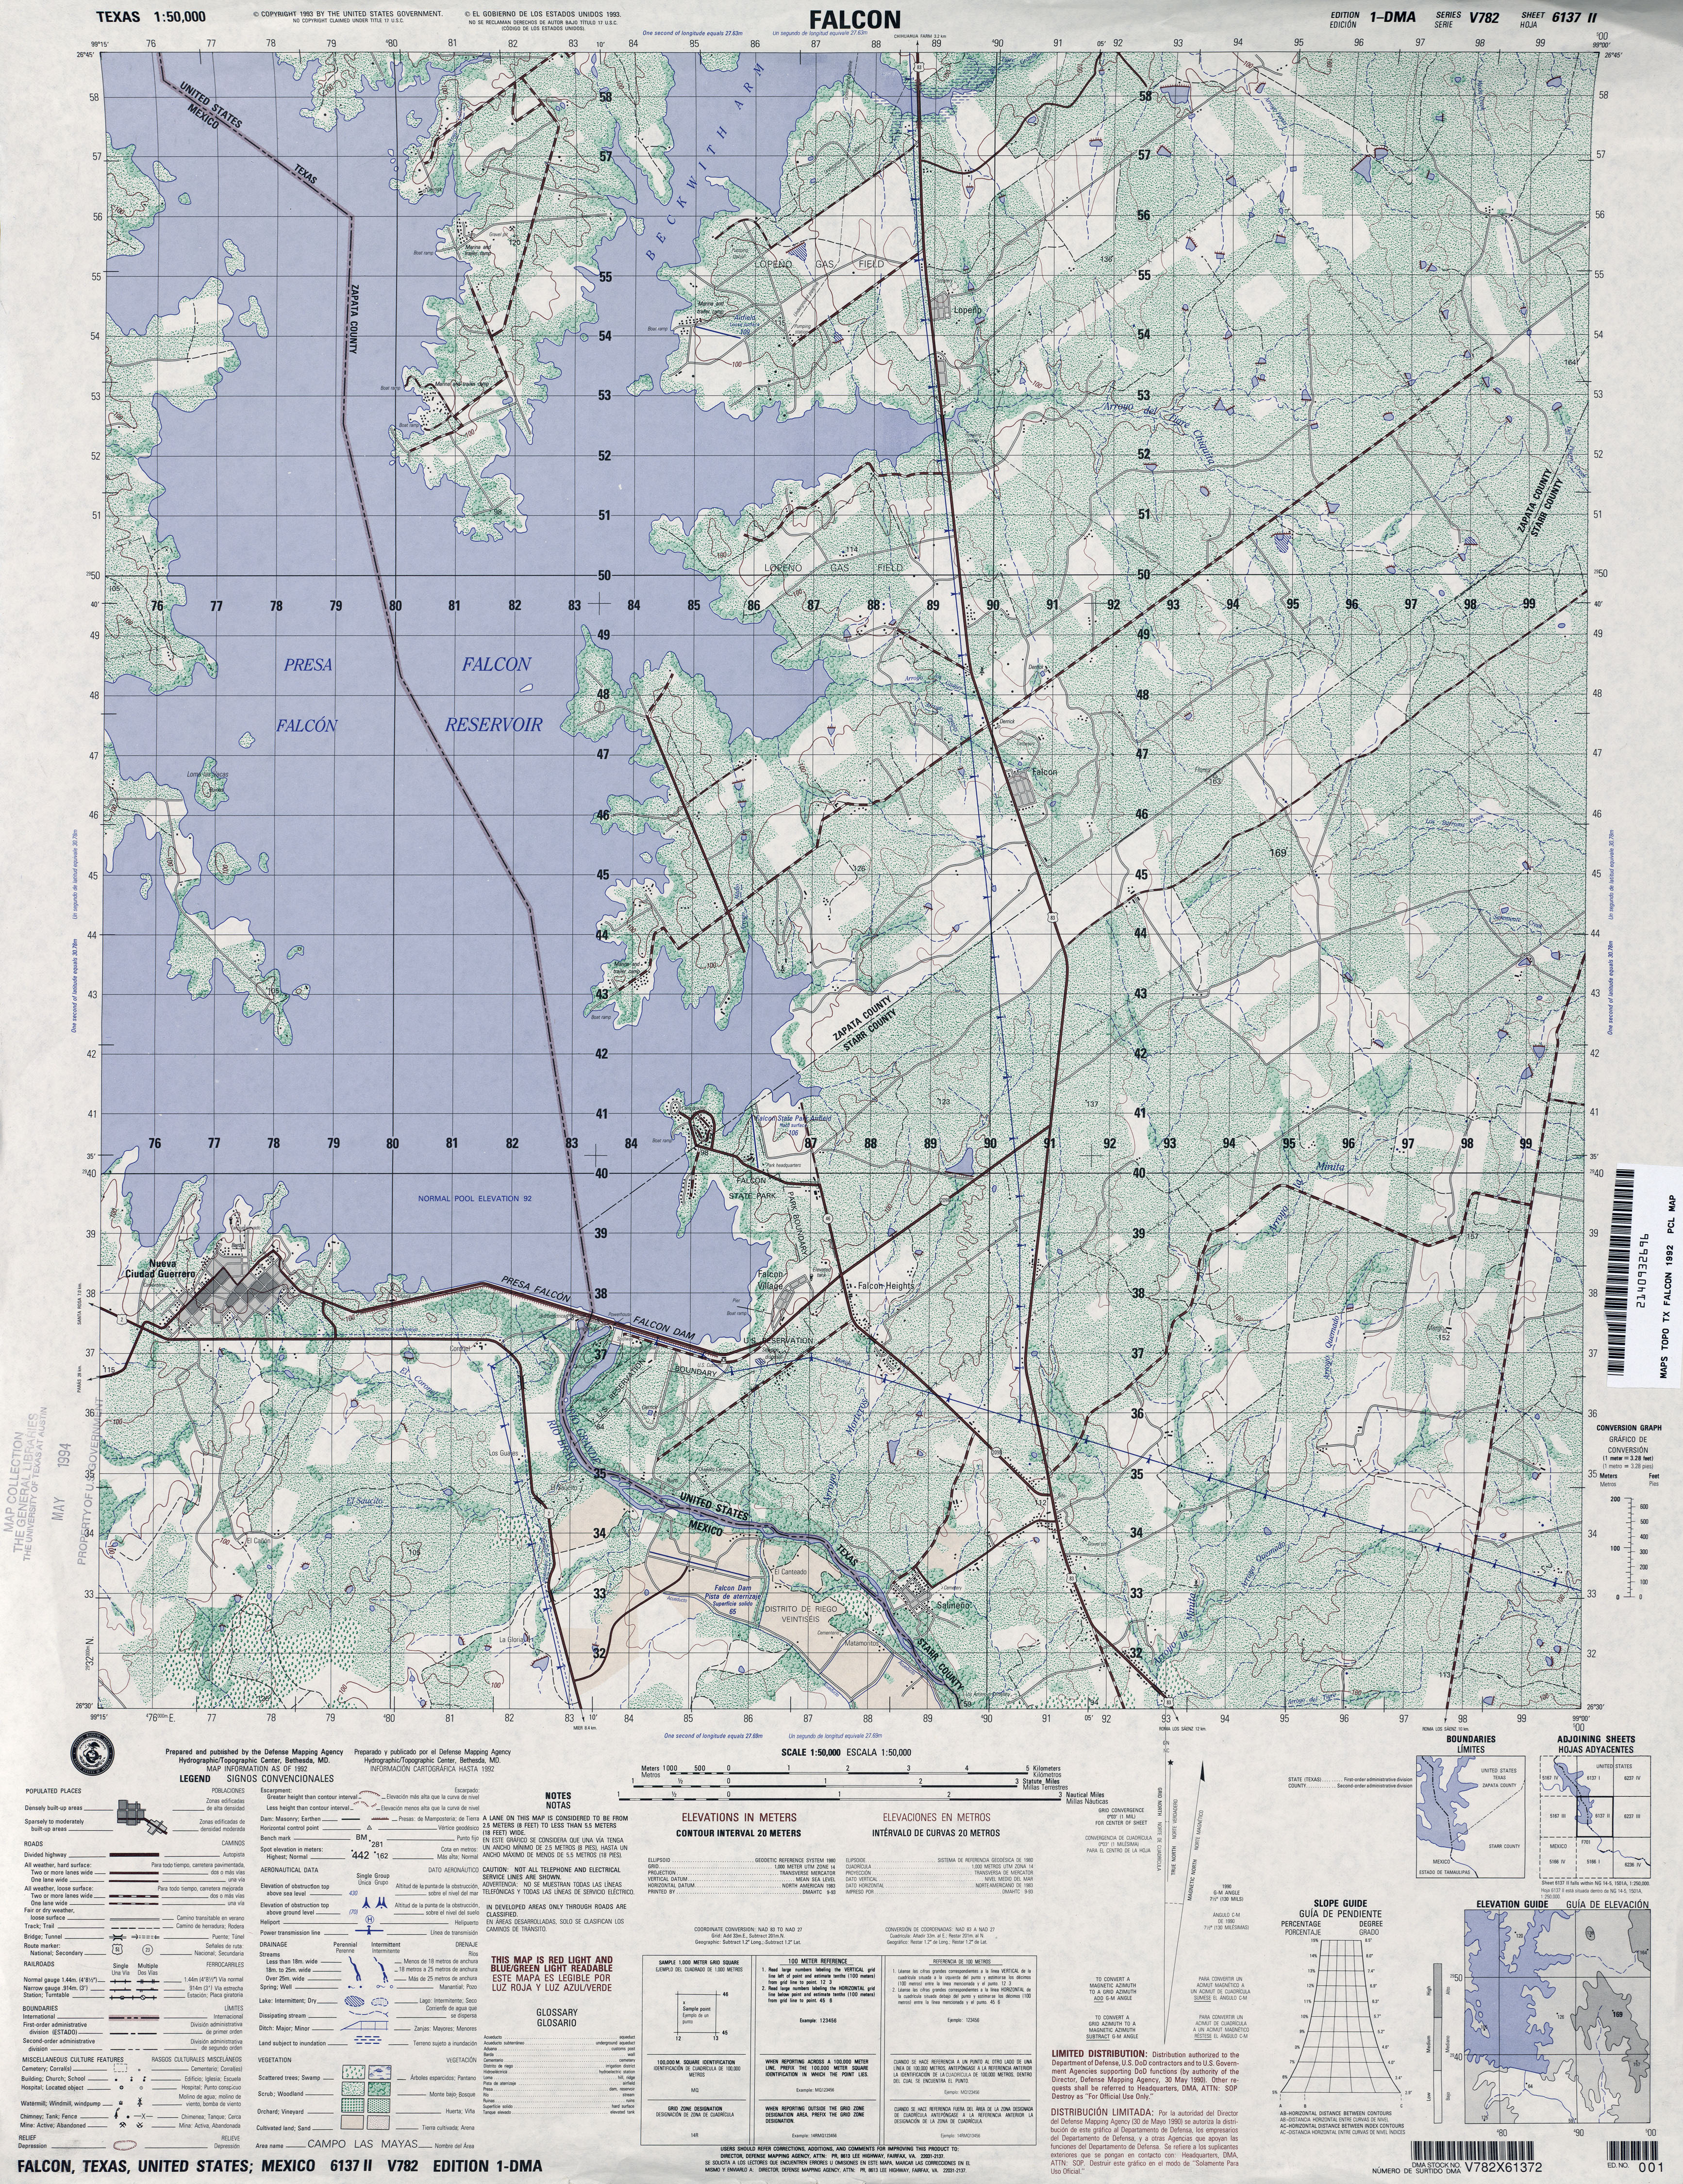 tactical map falcon 1 50 000 1992 5 5mb u s defense mapping agency series v782